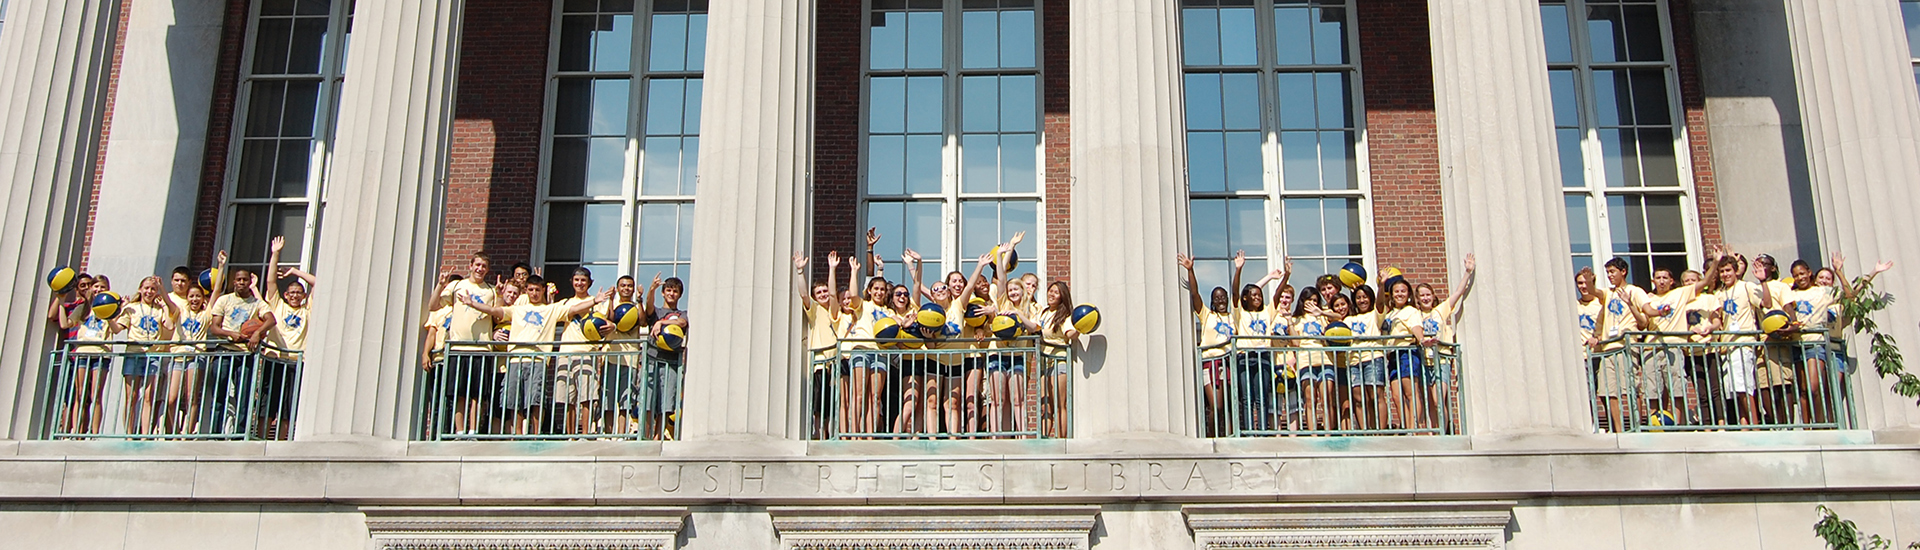 Students pose on the balcony of Rush Rhees Library